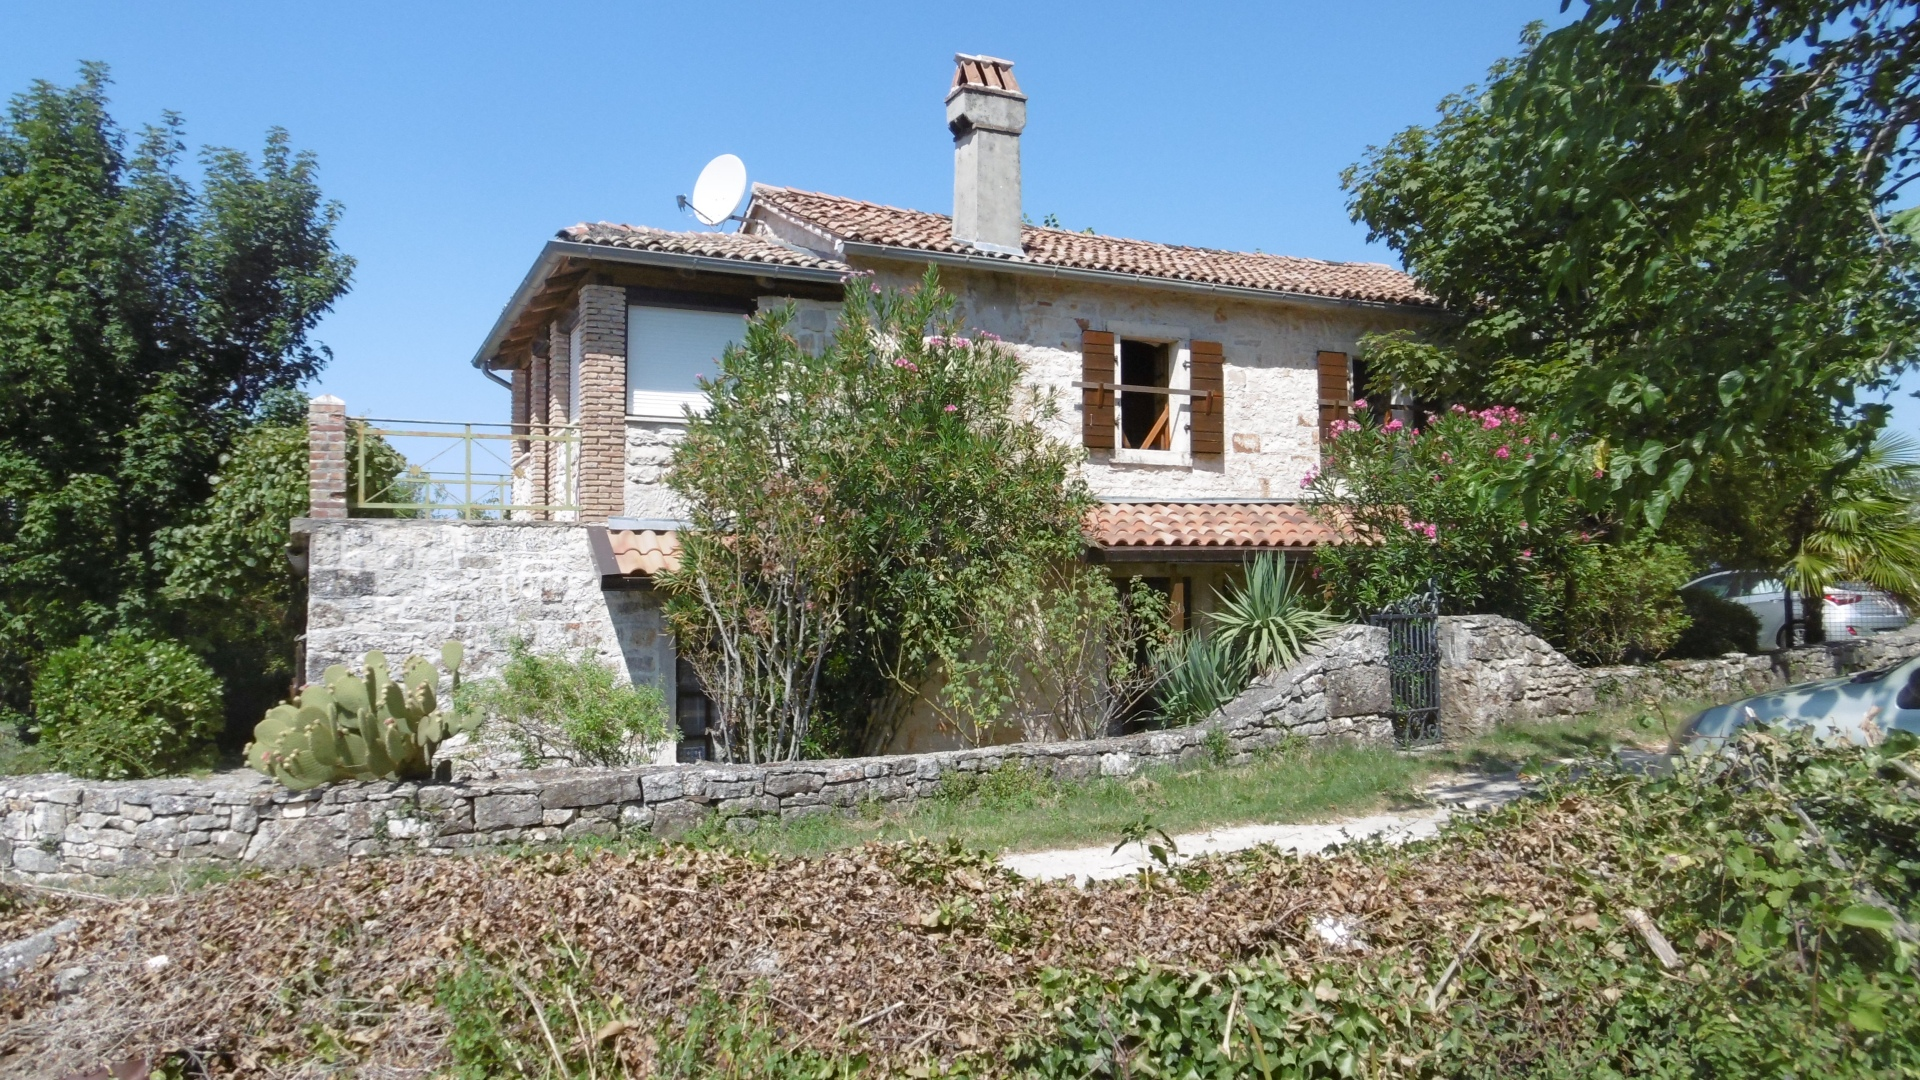 Z-915 rustic, detached stone house in idyllic quiet location with panoramic views and large plot of approx. 2,300 m² (building land).